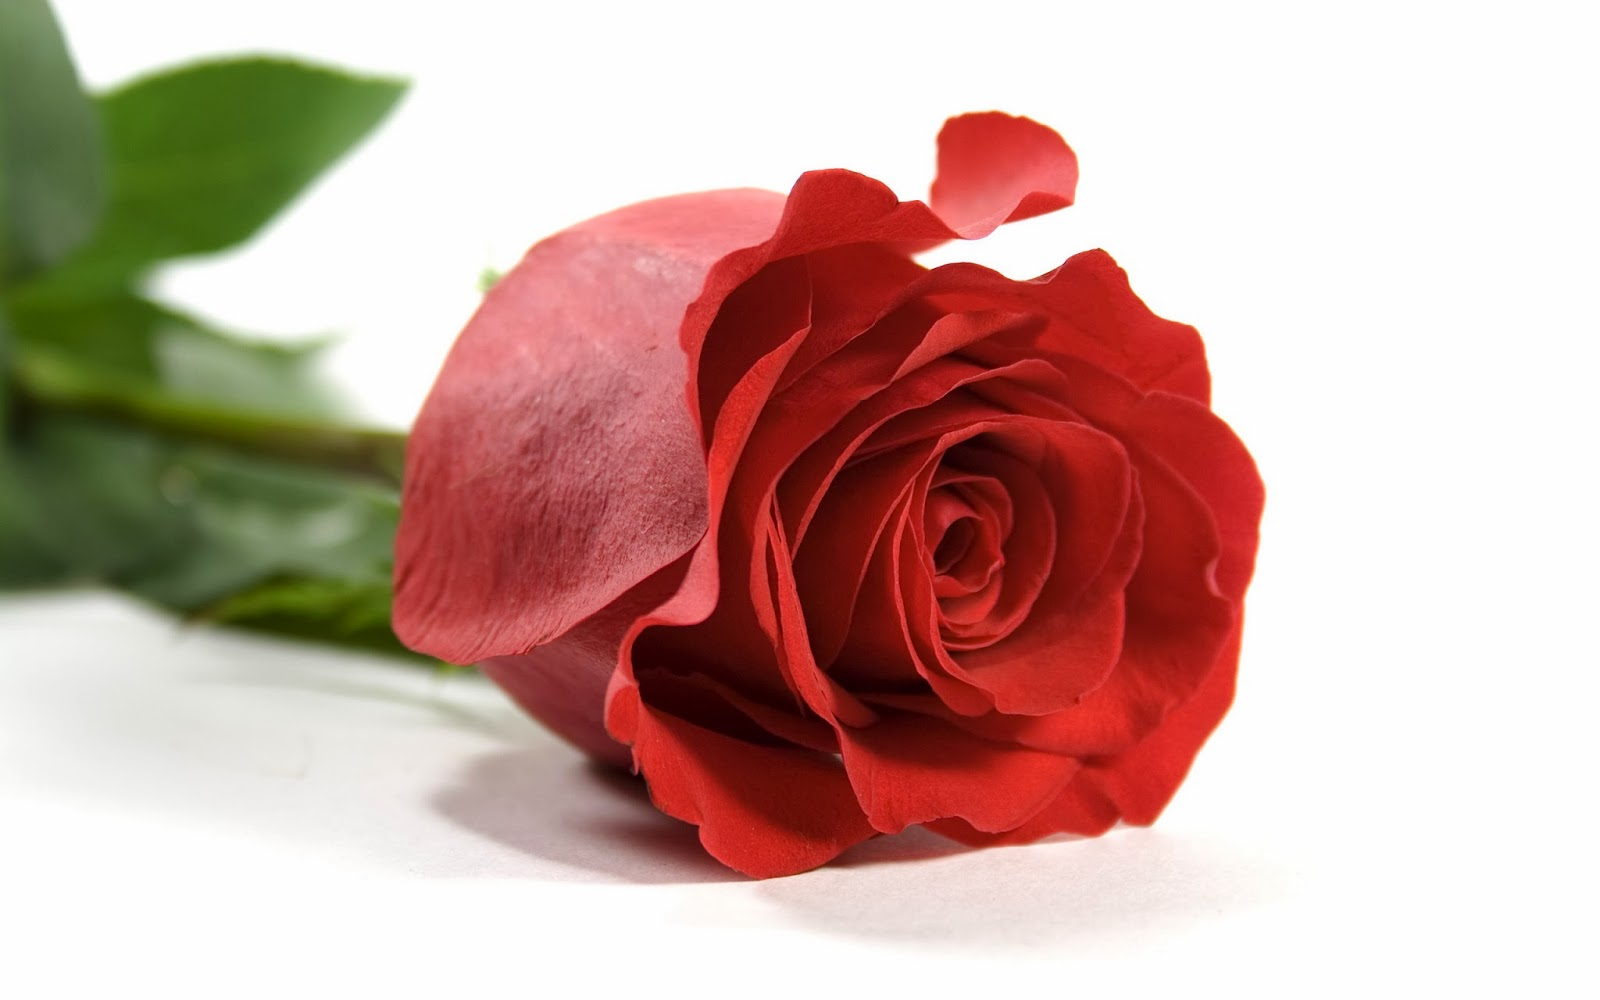 Red rose hd flowers wallpapers flowers - Red rose flower hd images ...